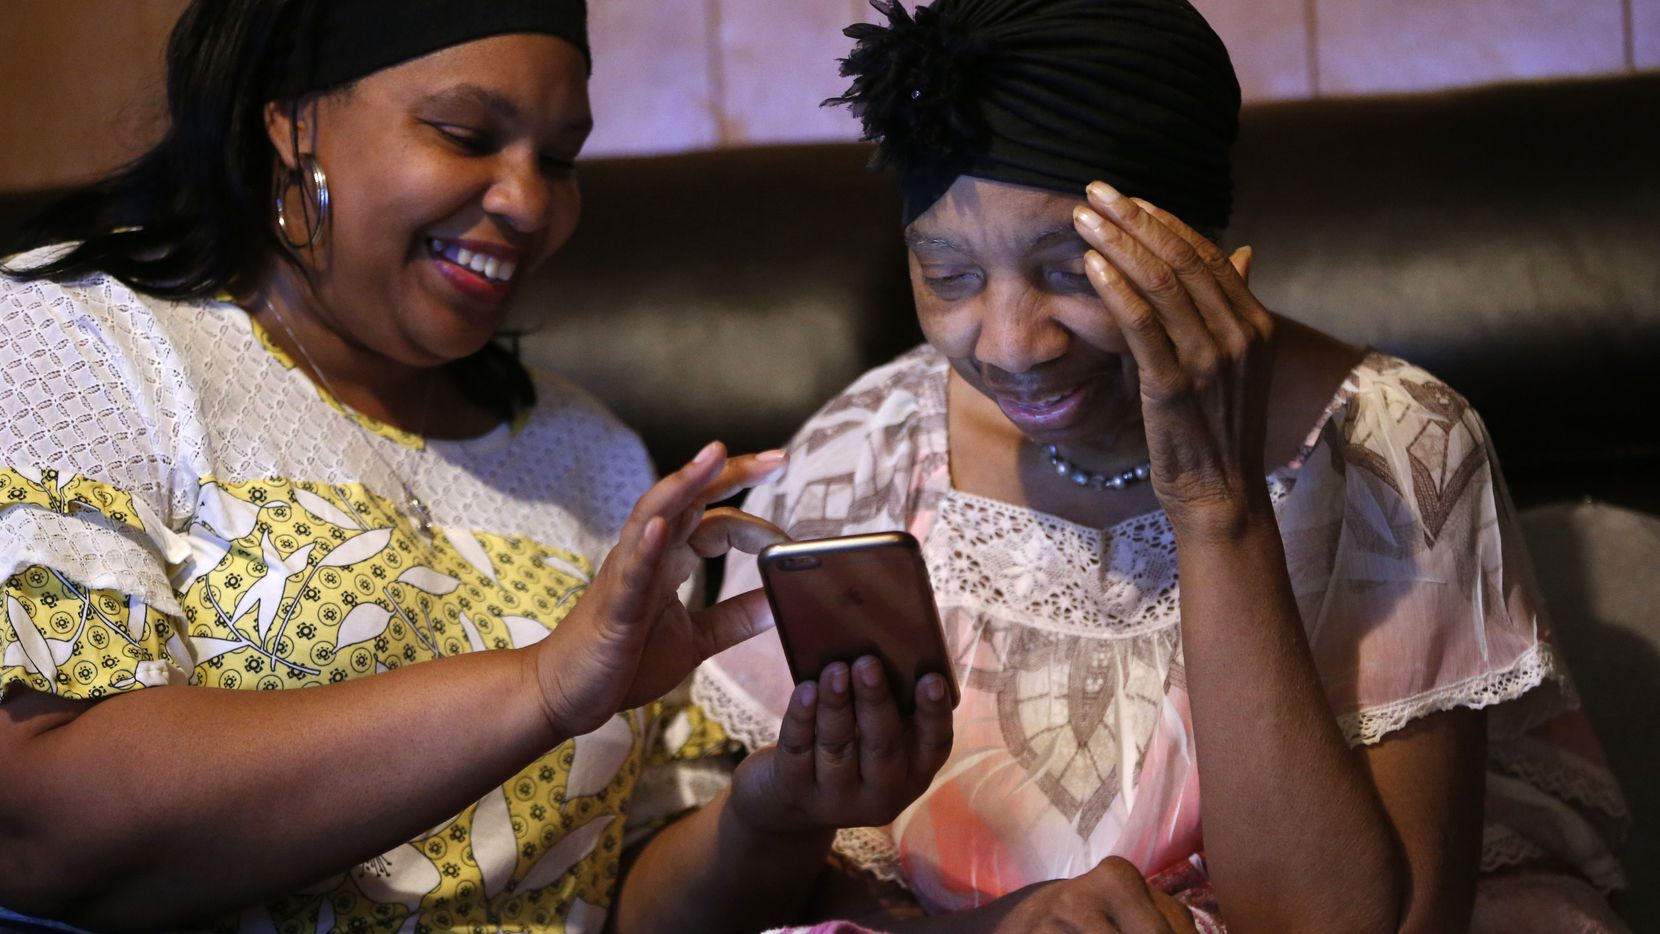 Jennifer Greer (left) plays gospel music for her mother, Carolyn Greer, at their Dallas home. Brain games have slowed her mother's dementia, Jennifer says.